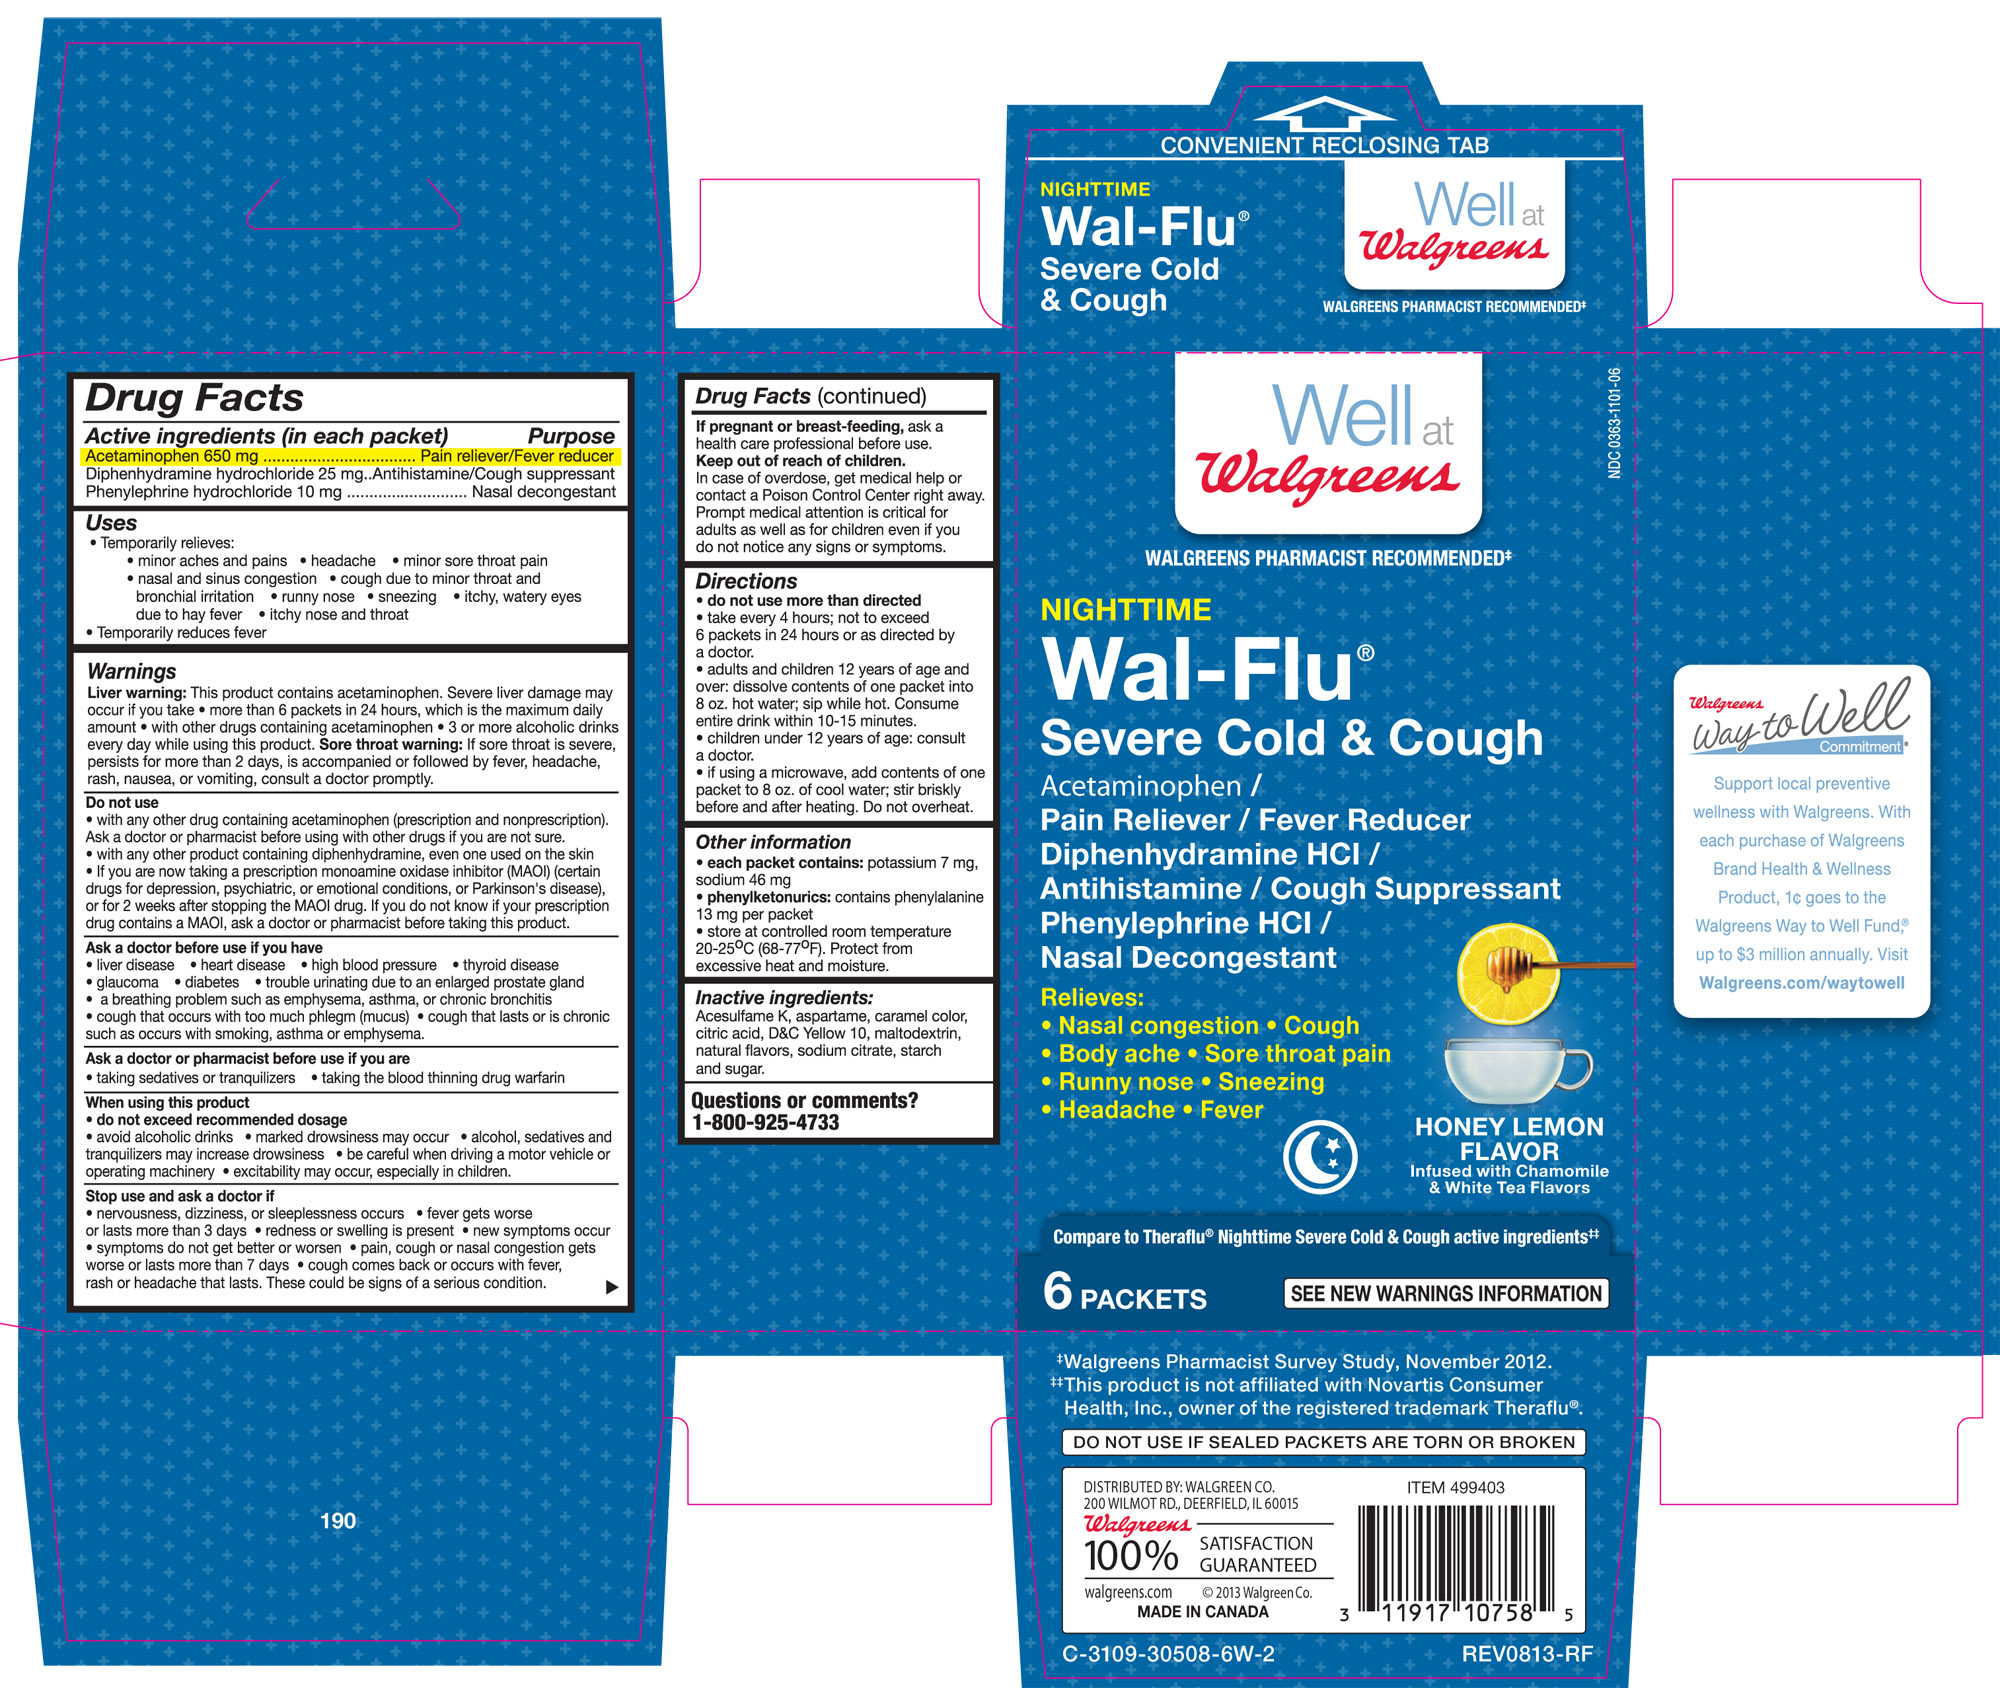 Walgreens Night Time Wal-flu Severe Cold And Cough Honey Lemon Flavor Infused With Chamomile And White Tea Flavors (Acetaminophen, Diphenhydramine Hcl, And Phenylephrine Hcl.) Granule, For Solution [Walgreen Co.]